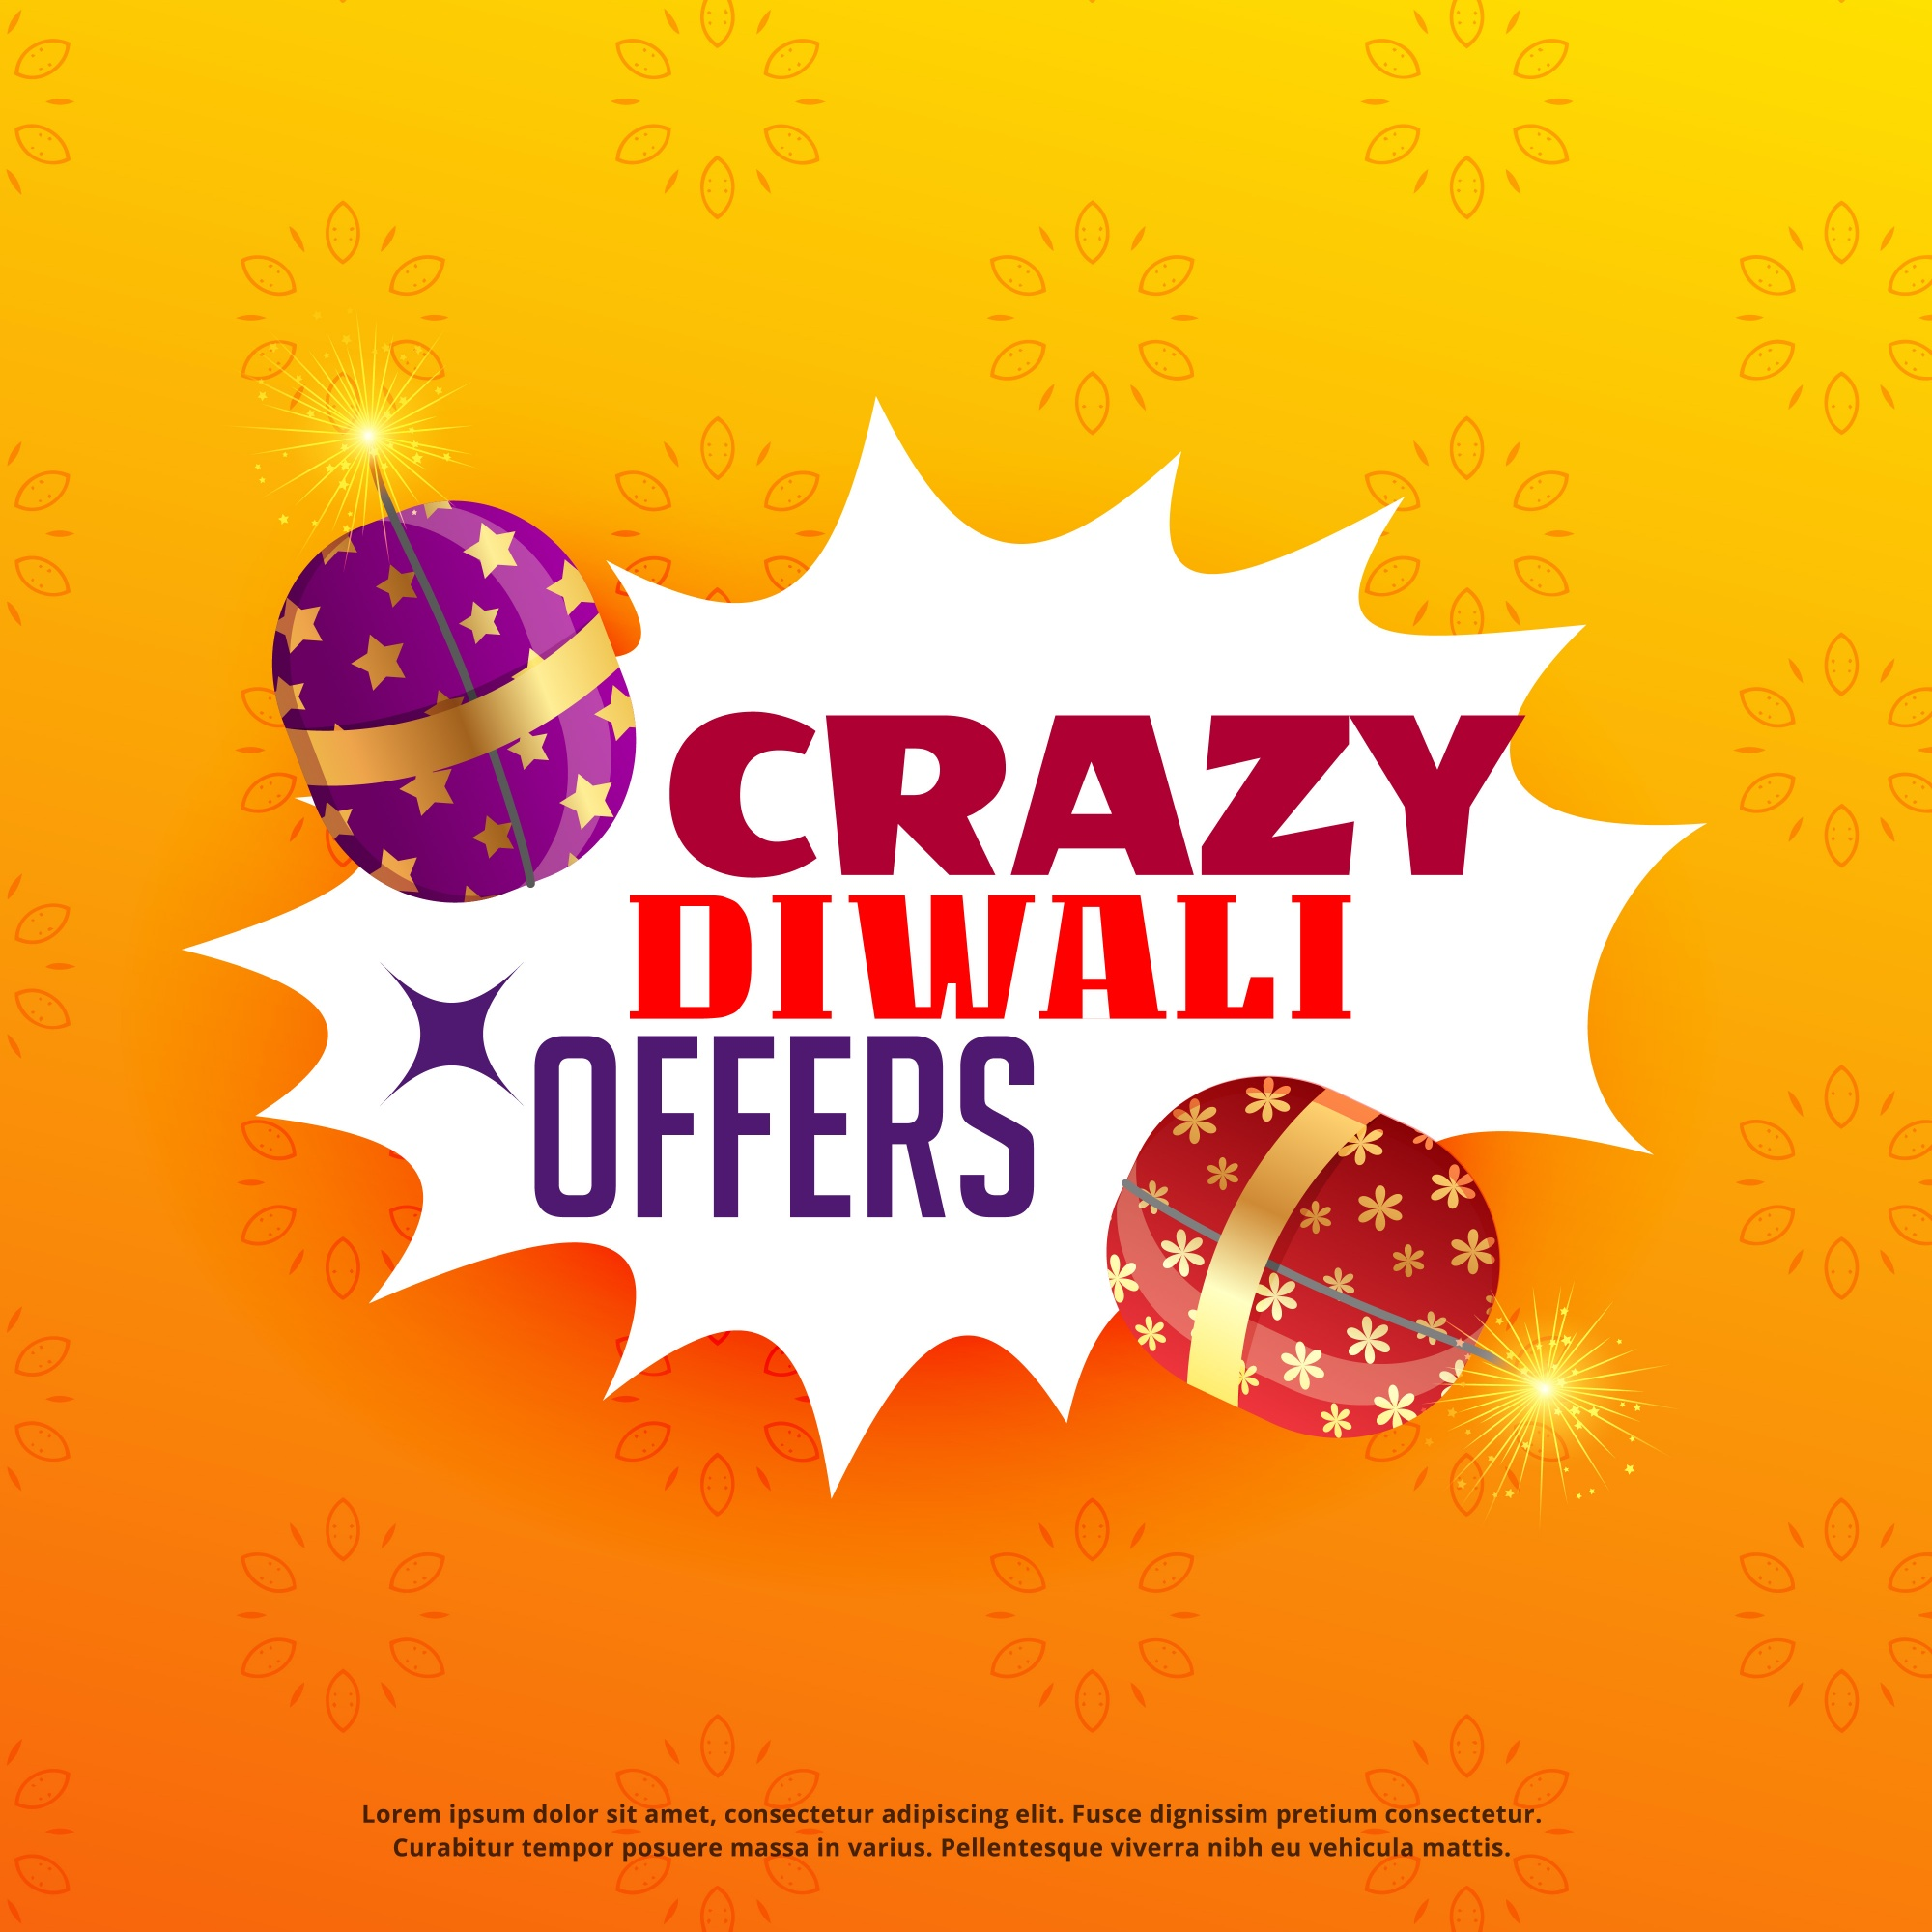 Diwali sale and offers poster design with festival crackers